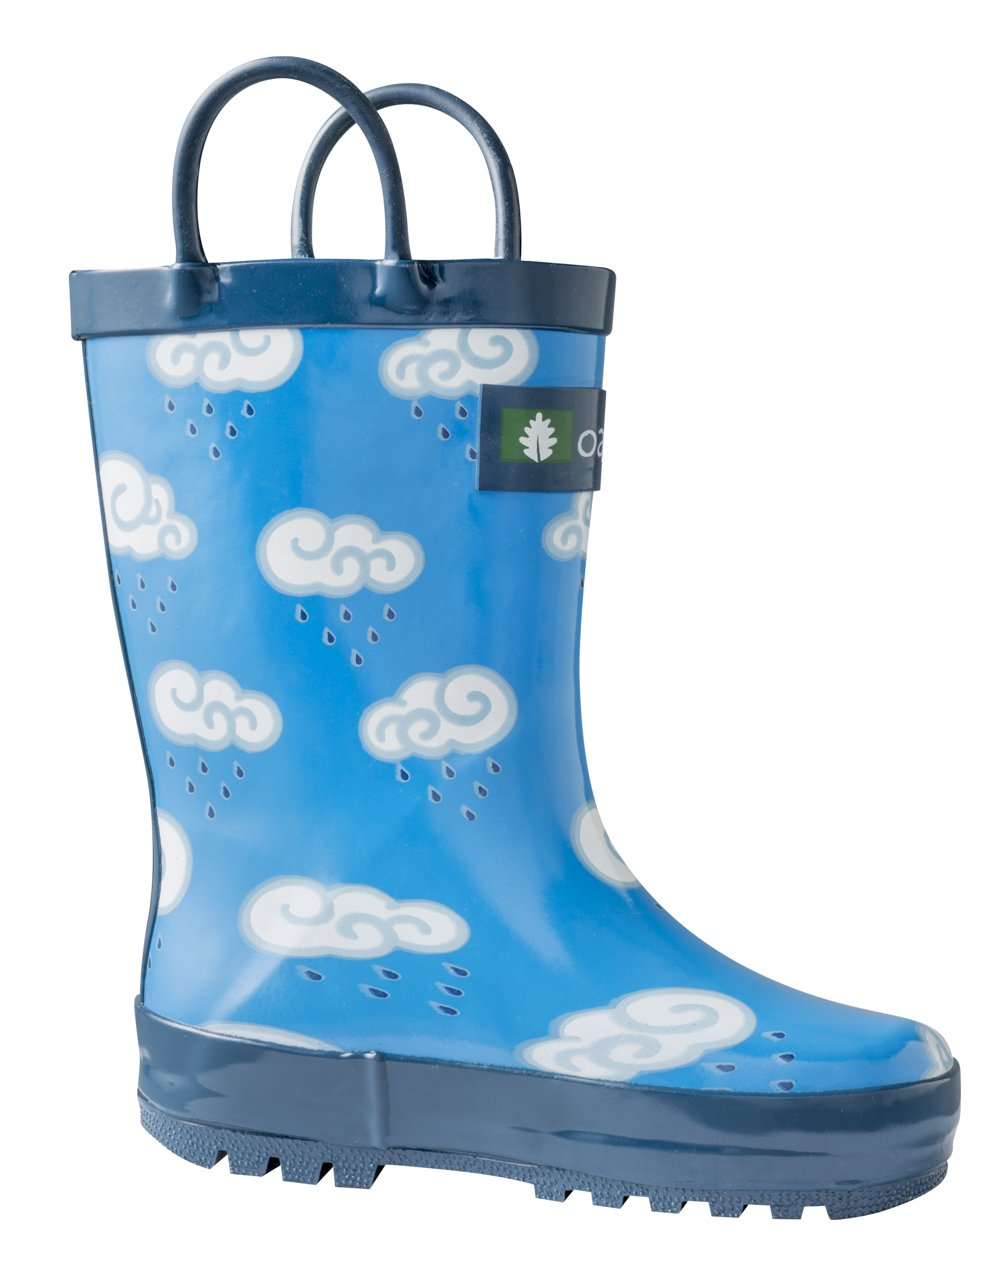 Oakiwear Kids Rubber Rain Boots with Easy-On Handles, Clouds, 13T US Toddler